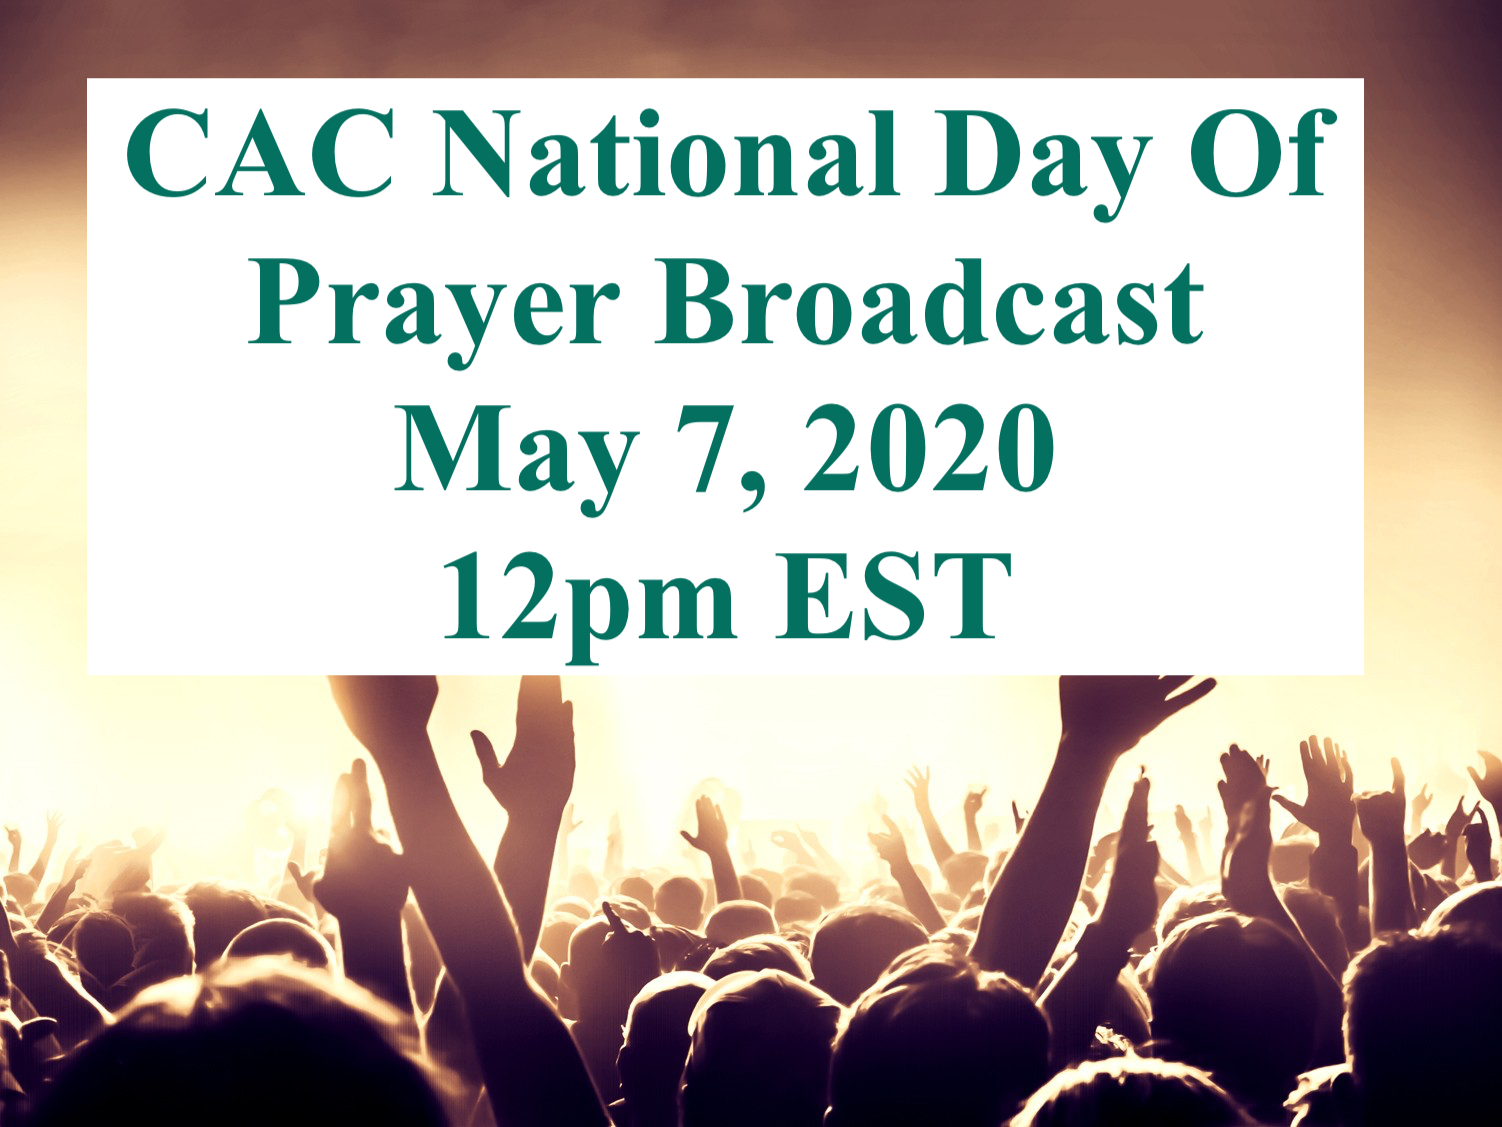 CAC National Day Of Prayer Broadcast